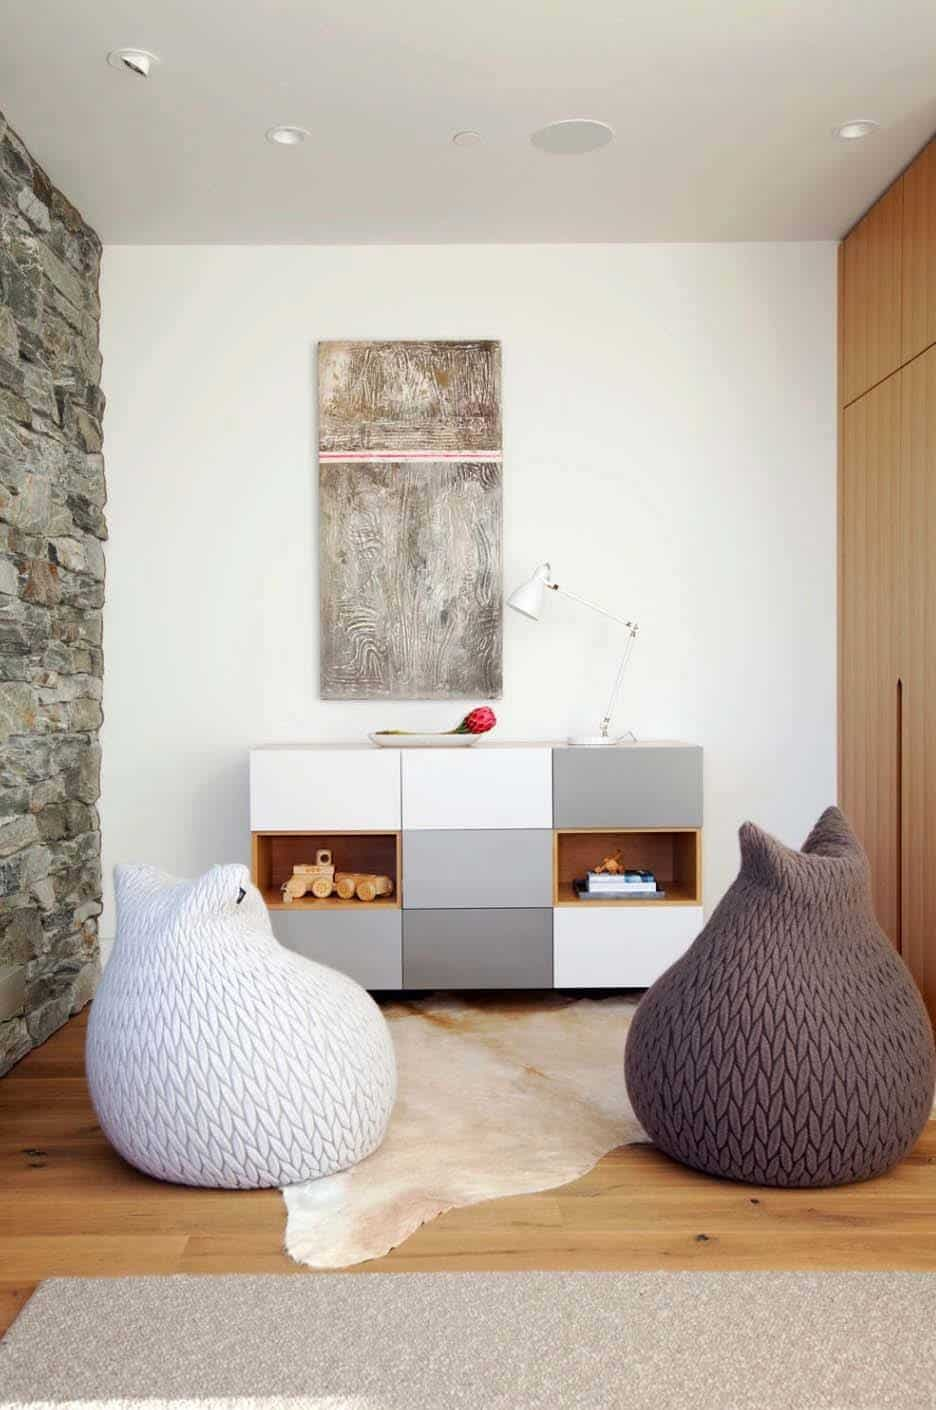 Contemporary Holiday Home-Marrimor Studio-23-1 Kindesign